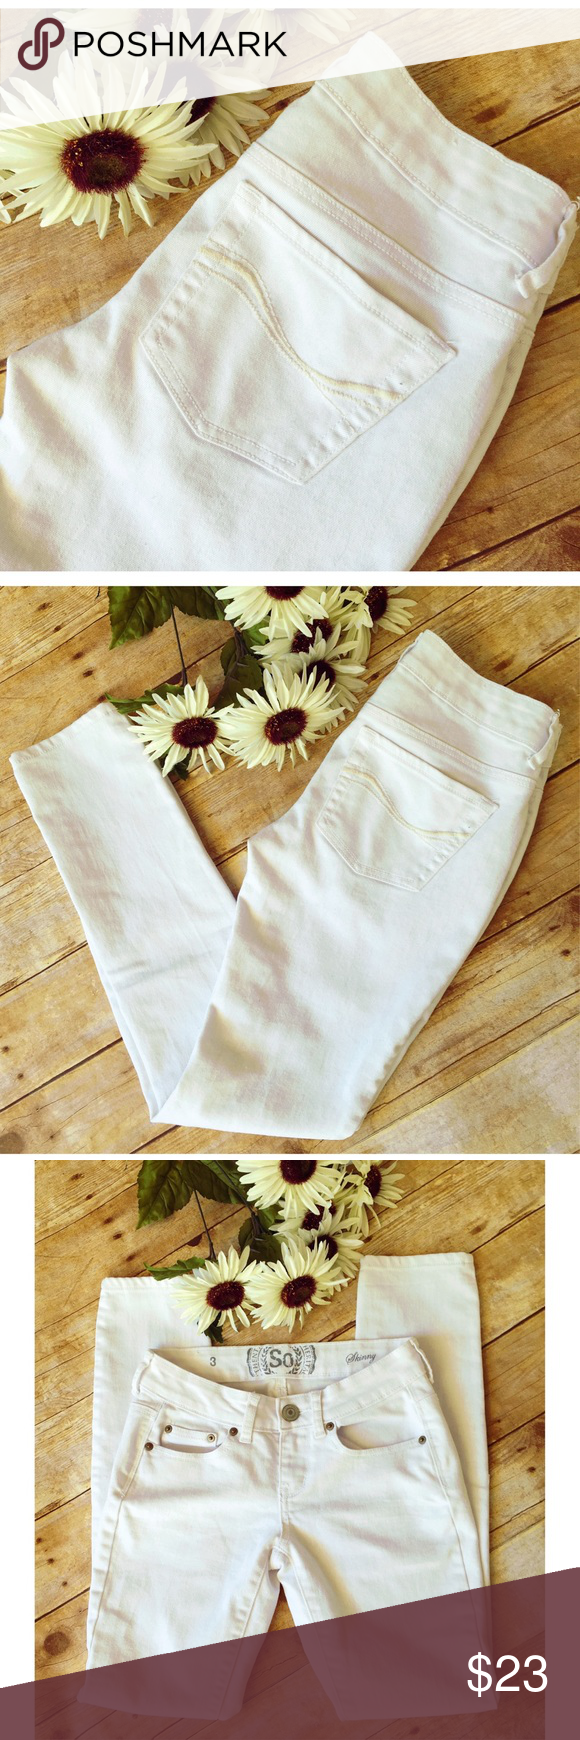 """$10 SALE🎉🎉🎉American Heritage Skinny Jeans Perfect white skinny jeans for the summer! In excellent condition. Inseam: 28.5""""🌺 American Heritage Jeans Skinny"""